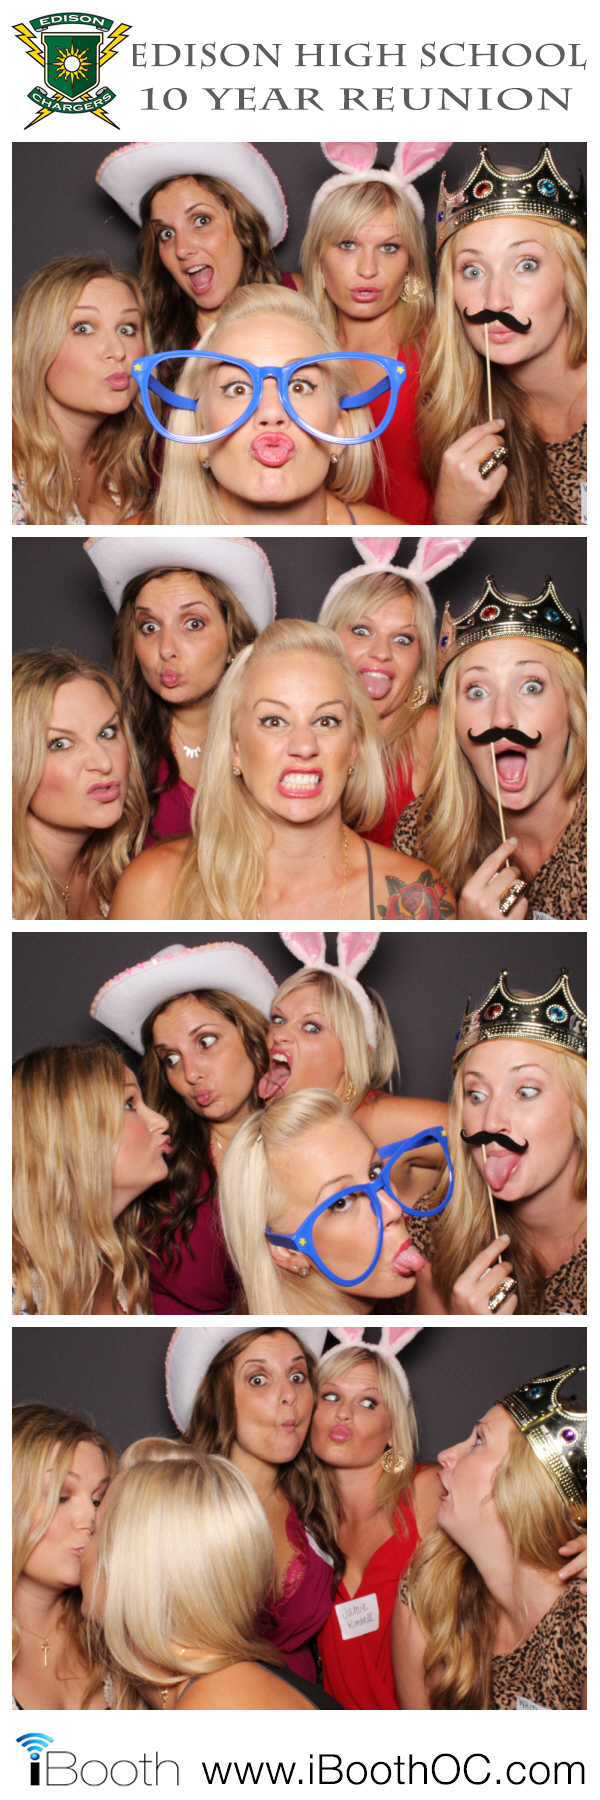 Photo Booth Rental Orange County, Orange County Photo Booth Rental